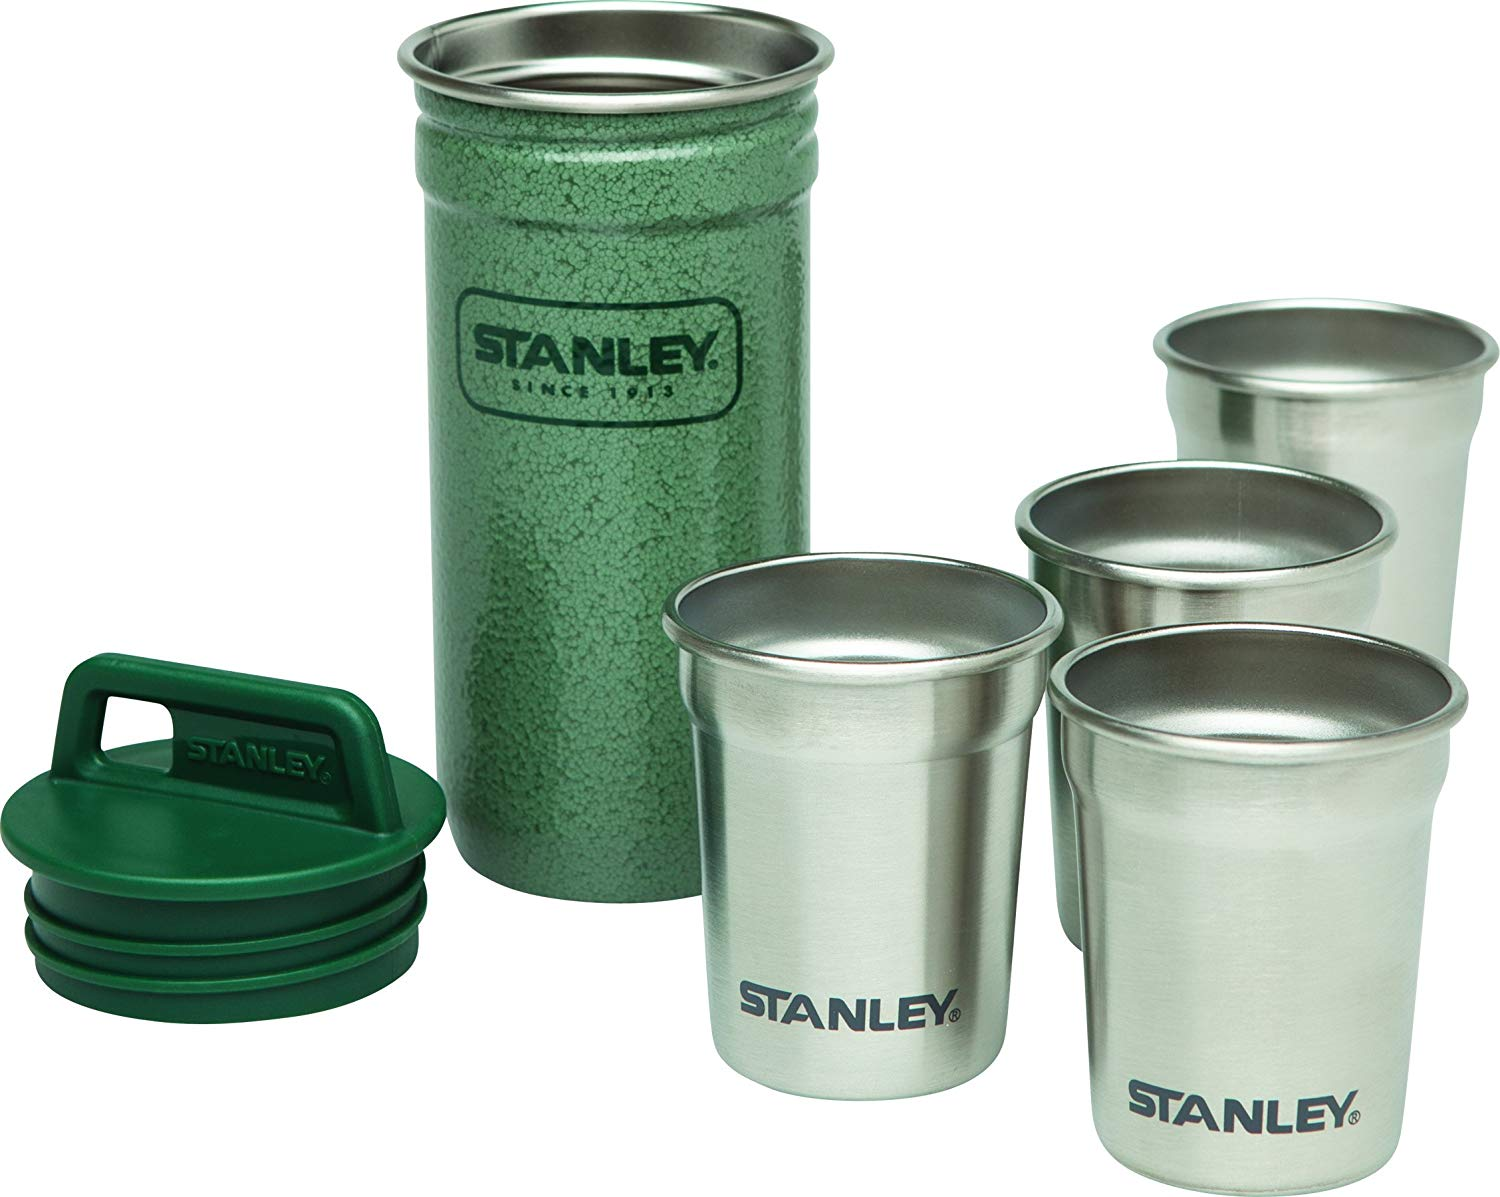 stanley stainless steel flask and shotglasses amazon prime gift for guys